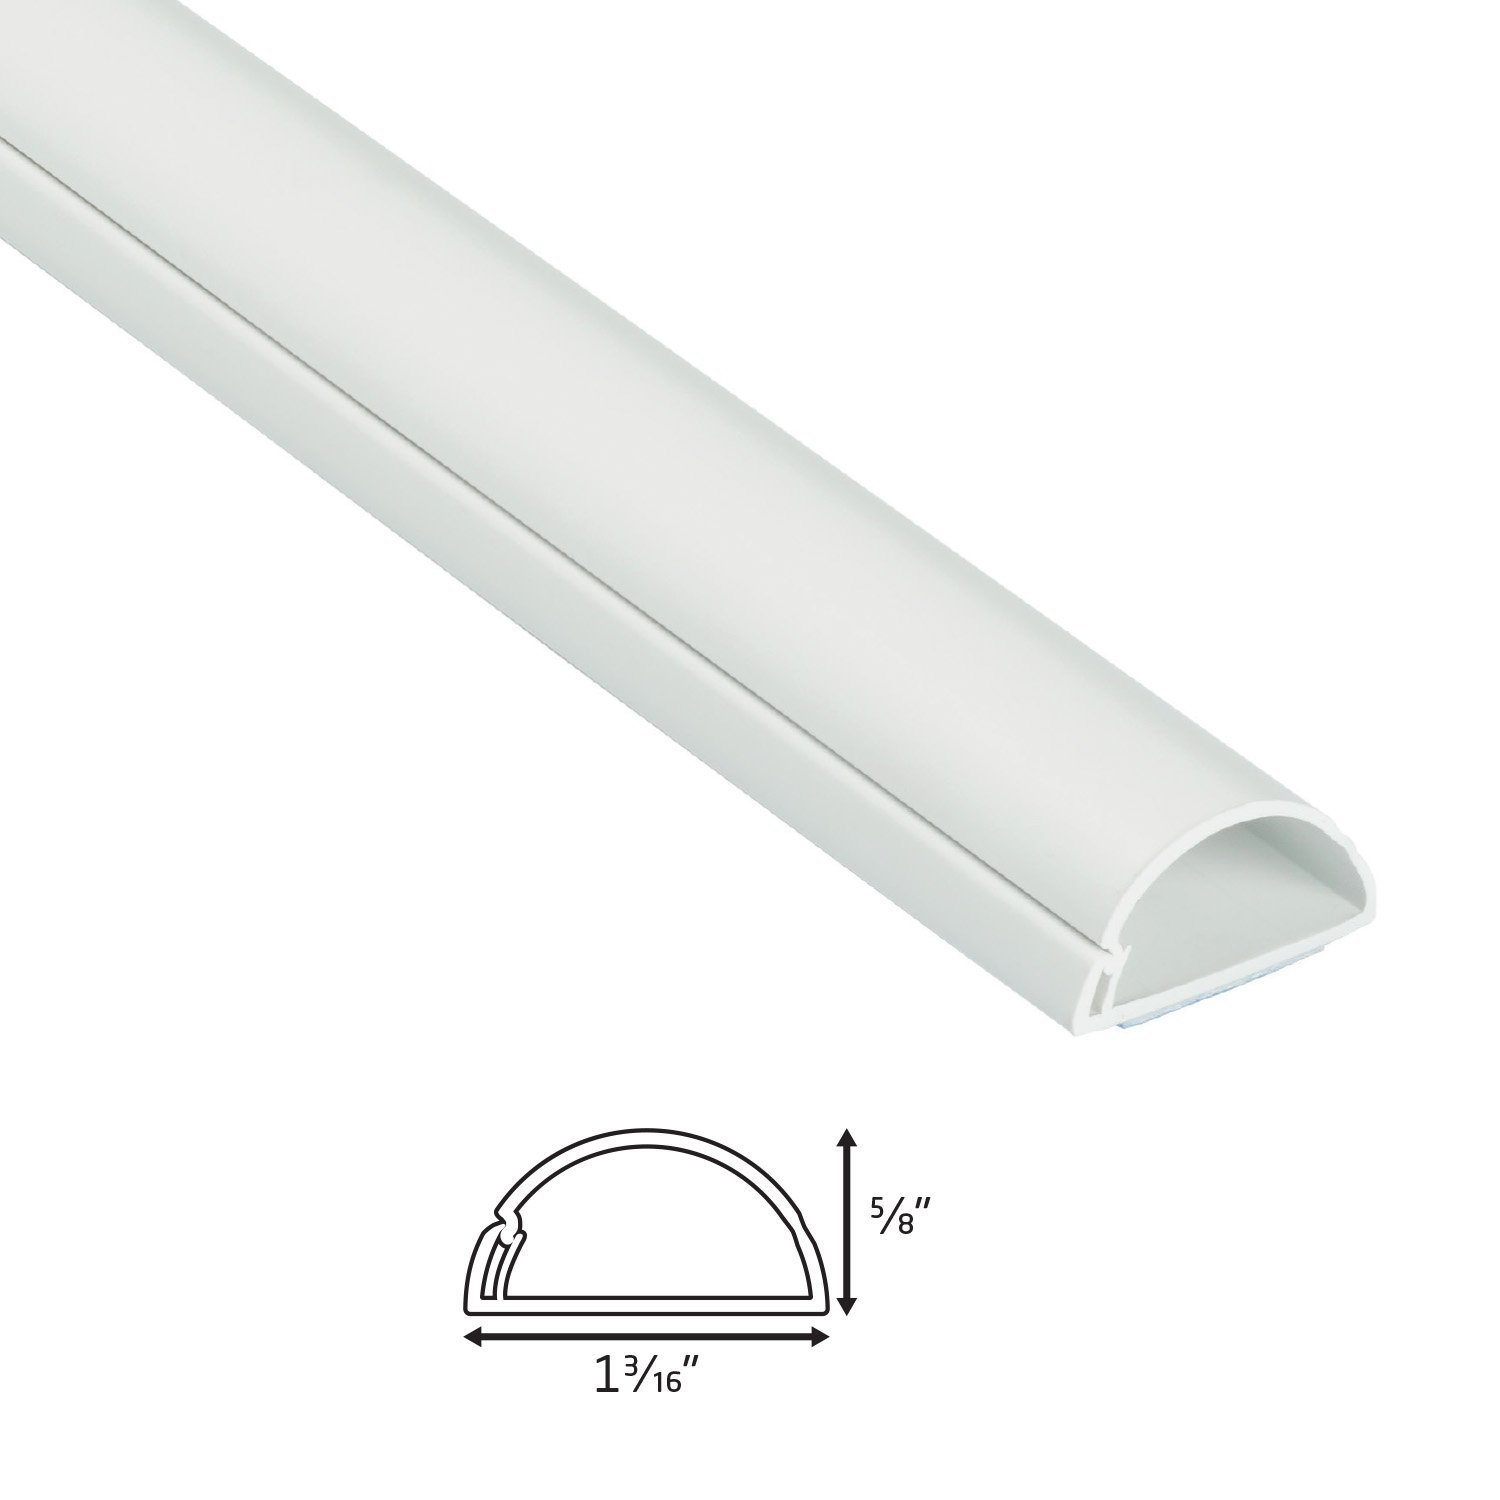 D-Line White Cable Raceway On-Wall Cord Cover 0.75 Cables W Pack of 8 x 0.39 | 39 Inch Medium Paintable Channel to Hide and Conceal Cords H Cable Management or Wires